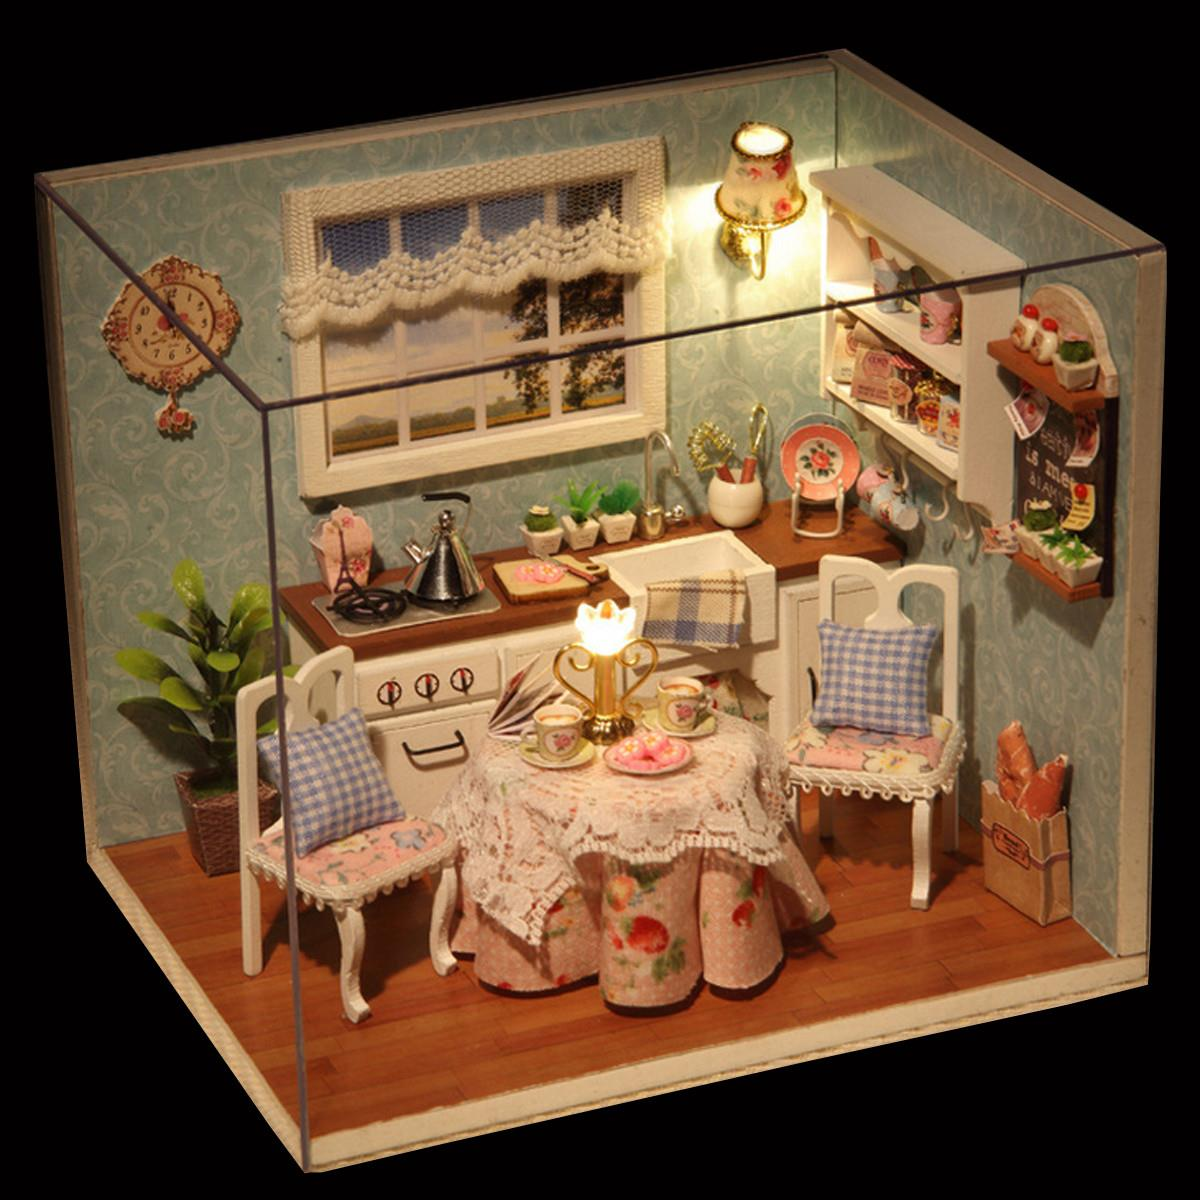 diy wooden doll house toys dollhouse miniature box kit with cover and led furnitures handcraft miniature dollhouse kitchen model - Small House Kit